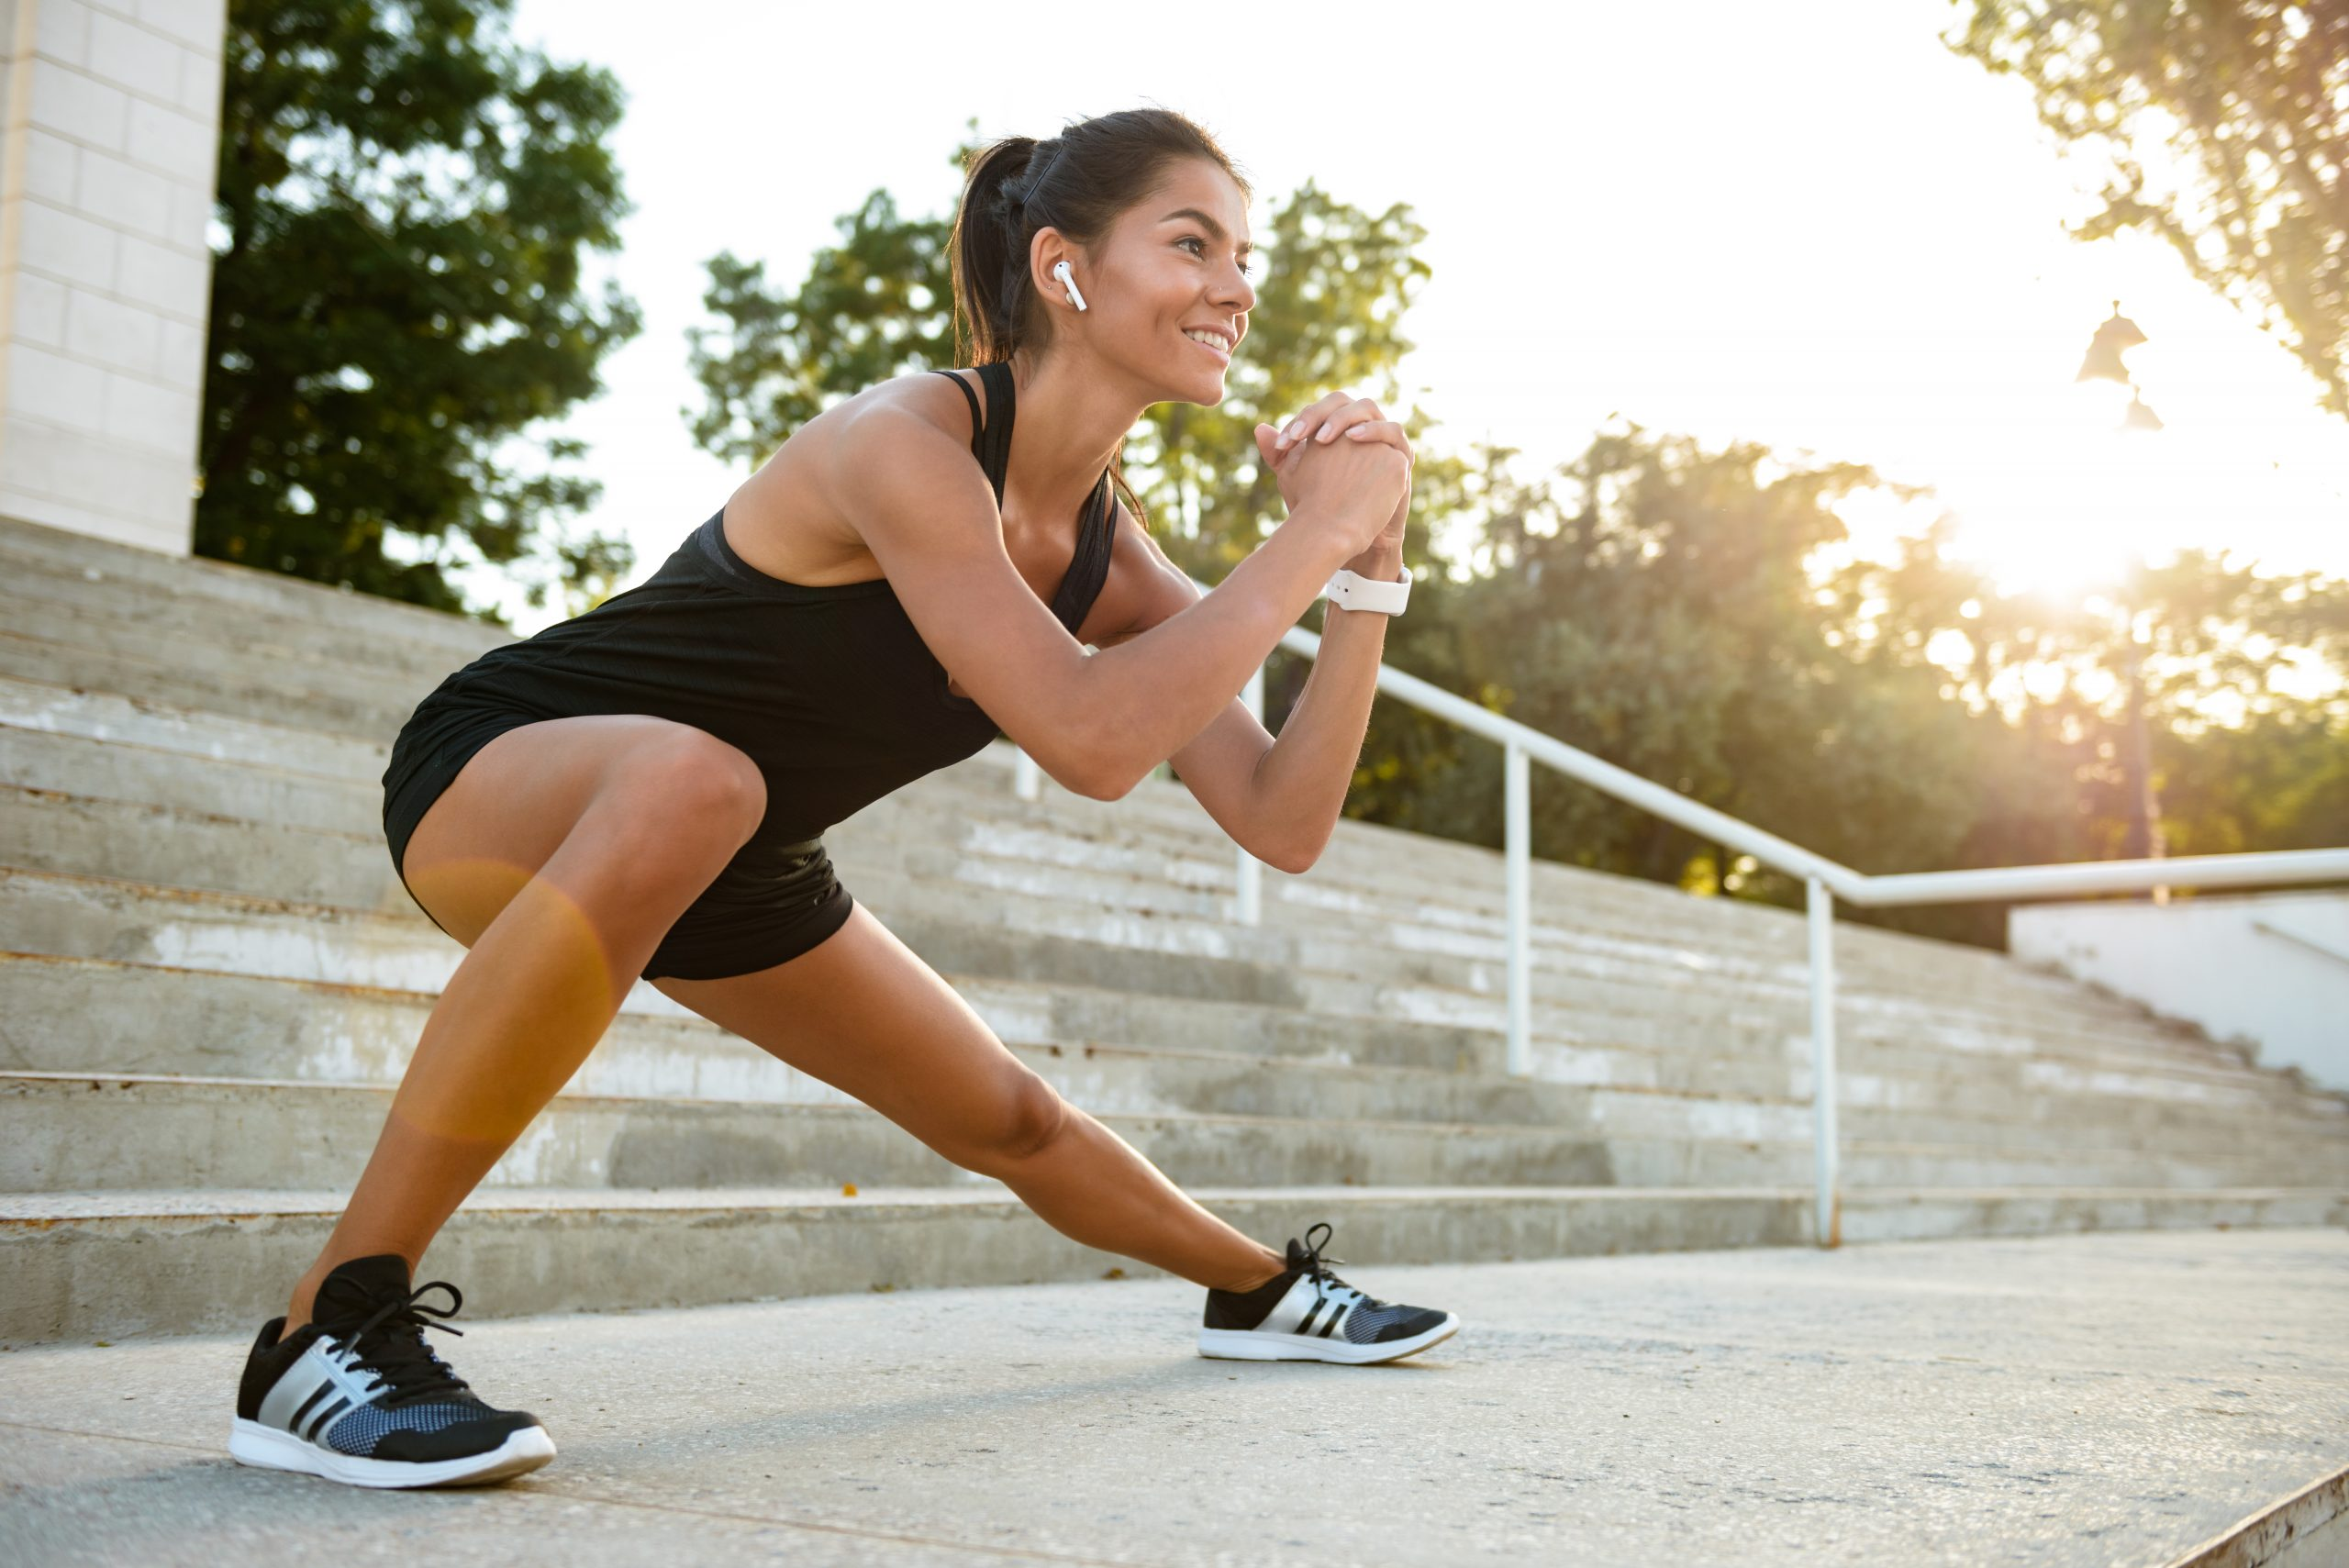 Portrait of a smiling fitness woman in earphones doing stretching exercises on stairs outdoors